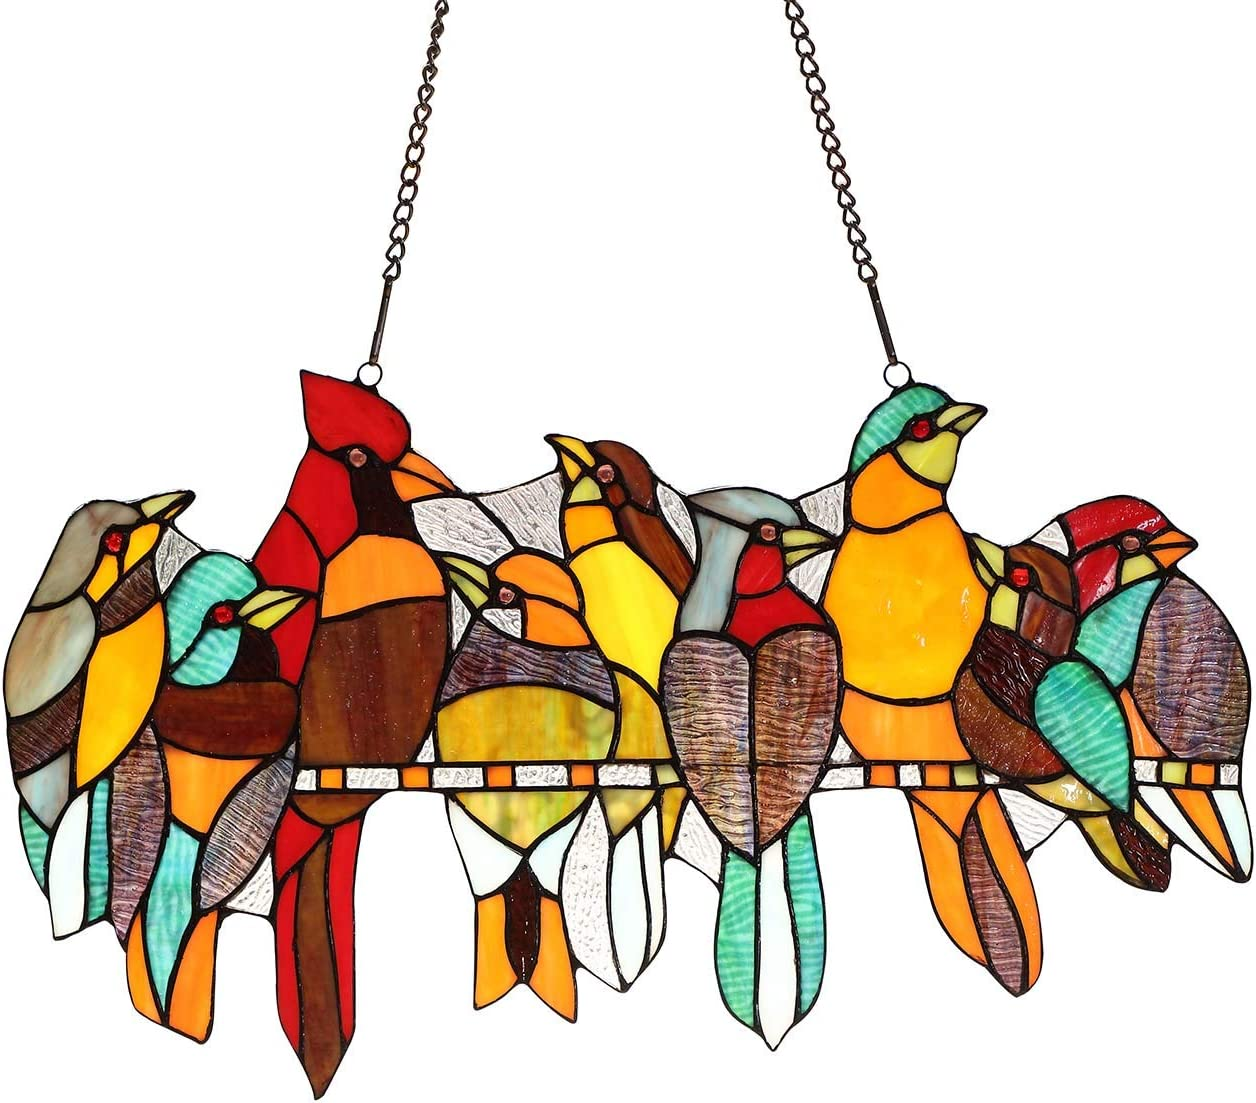 Bieye W10055 Tropical Birds on The Wire Tiffany Style Stained Glass Window Panel Hangings with Chain, 22 W x 13 H